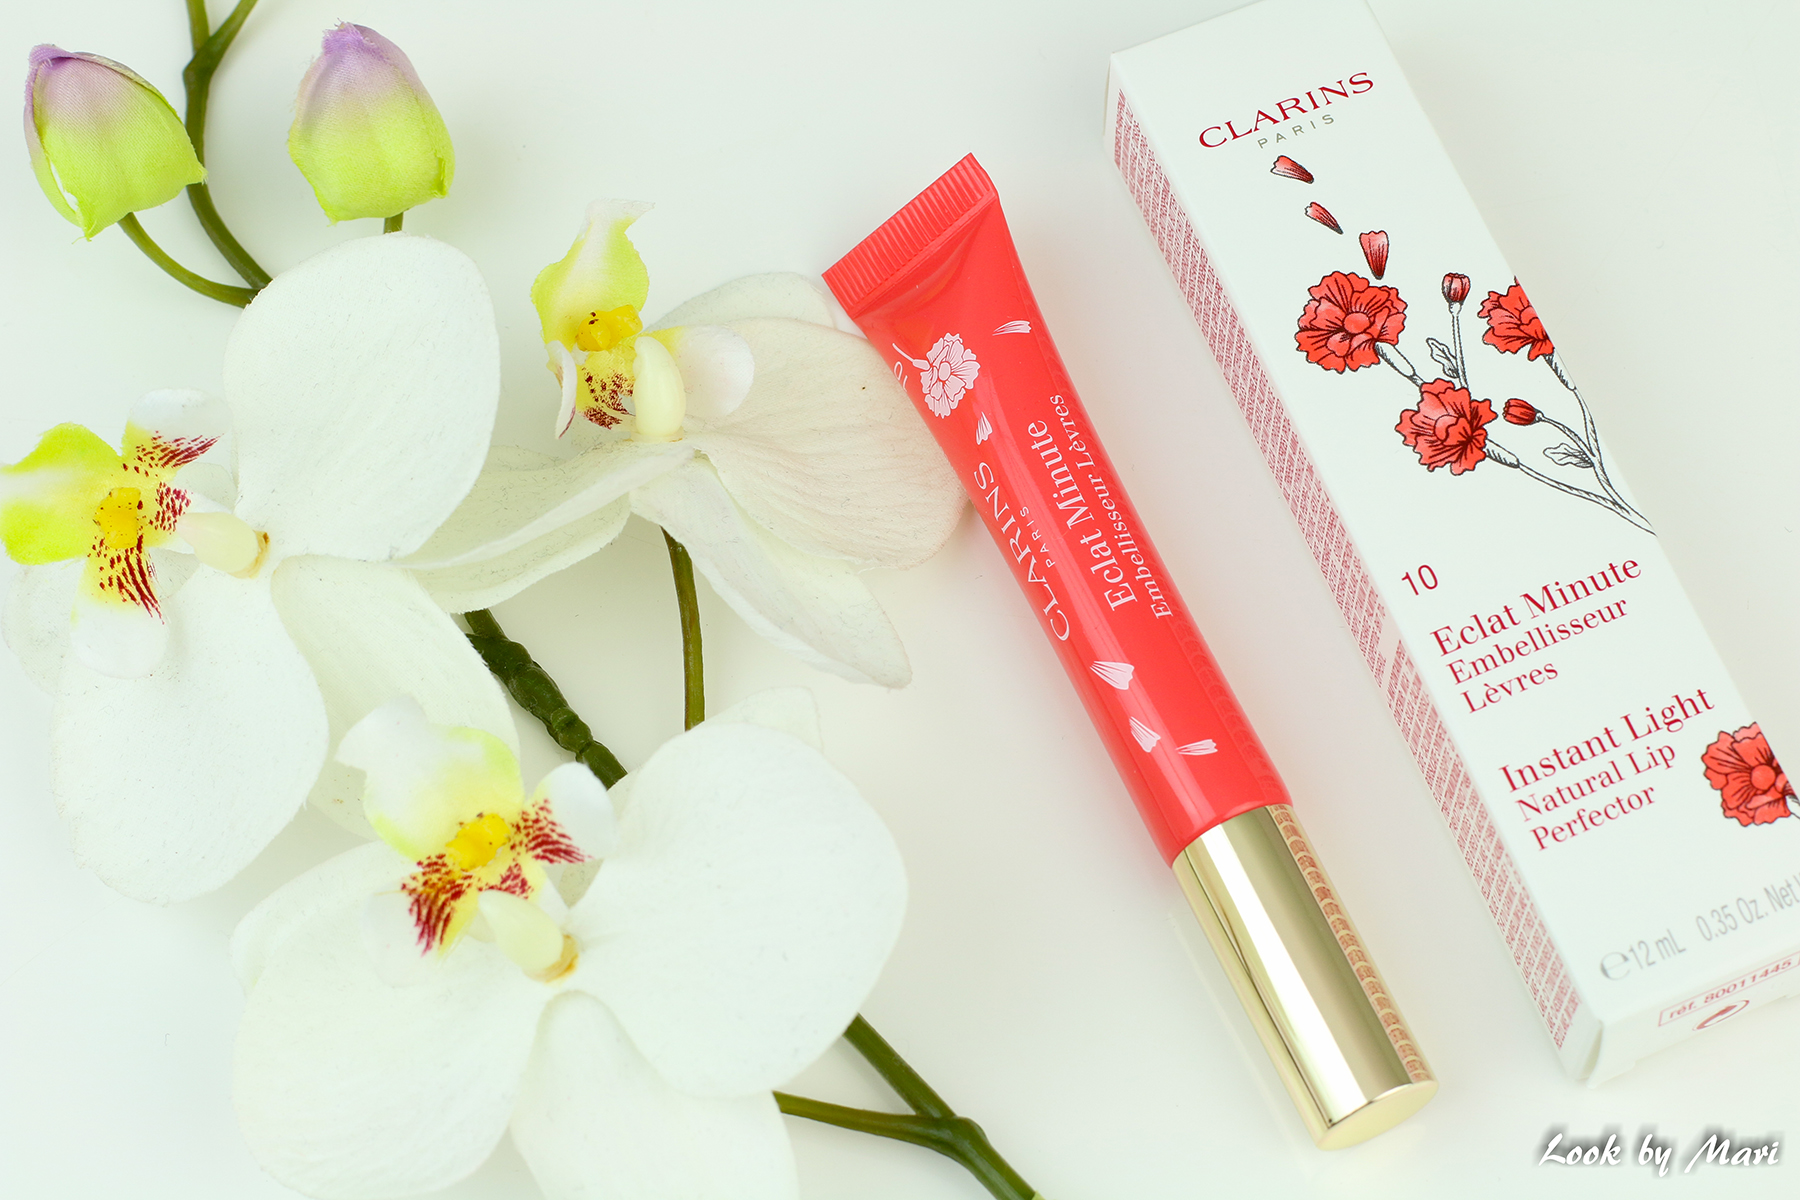 7 clarins instant light natural lip perfector review kokemuksia 10 pink shimmer